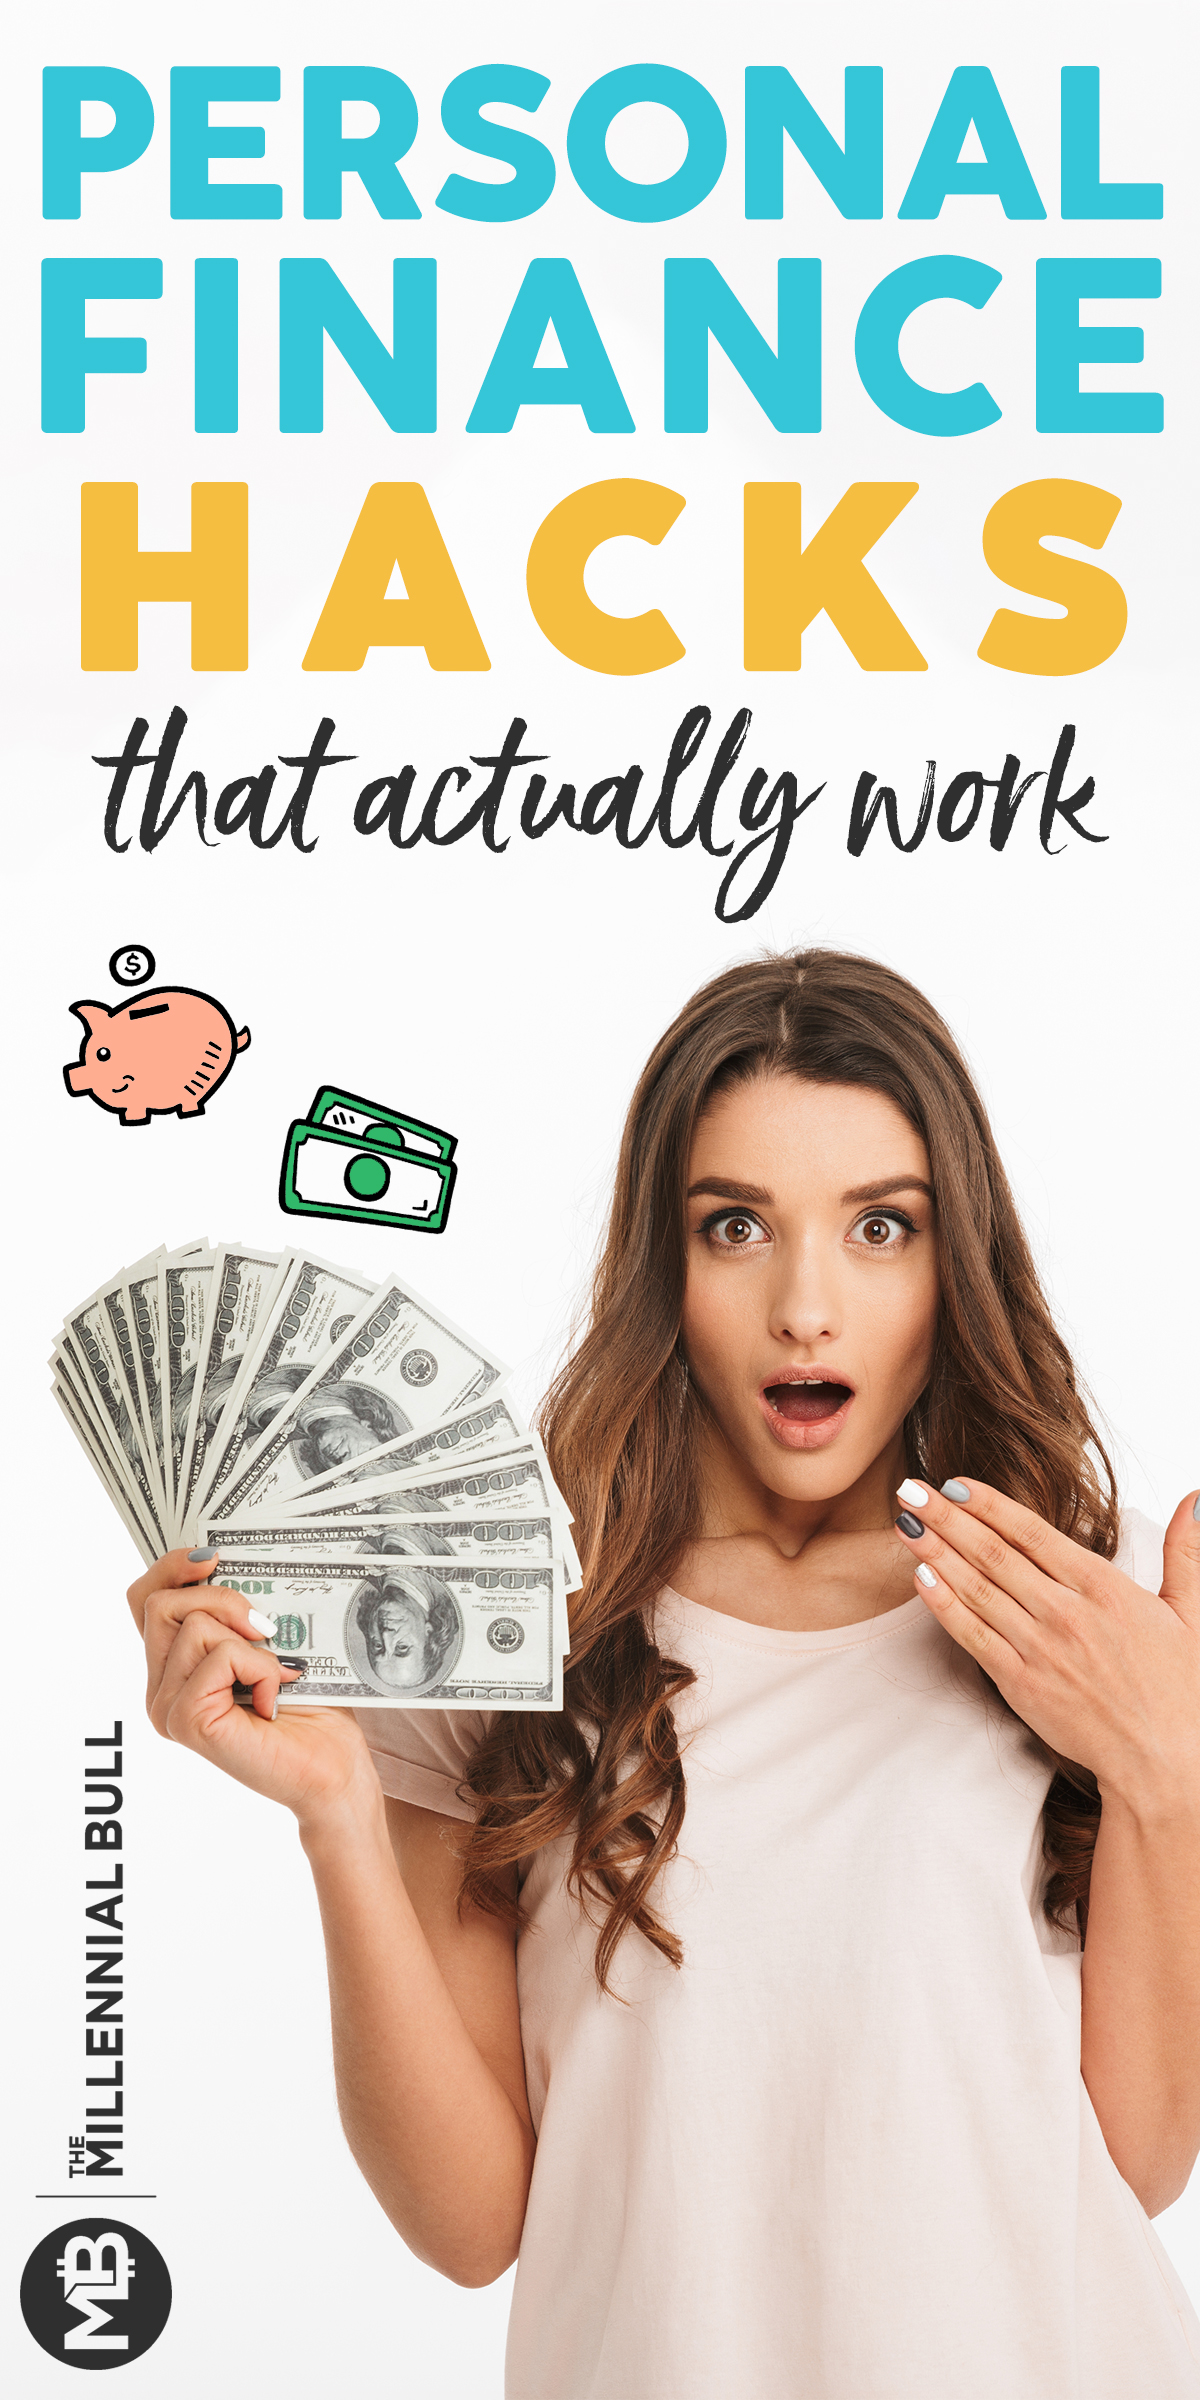 personal finance hacks that actually work 2 - 8+ Personal Finance Tips To Get Rich In 2019